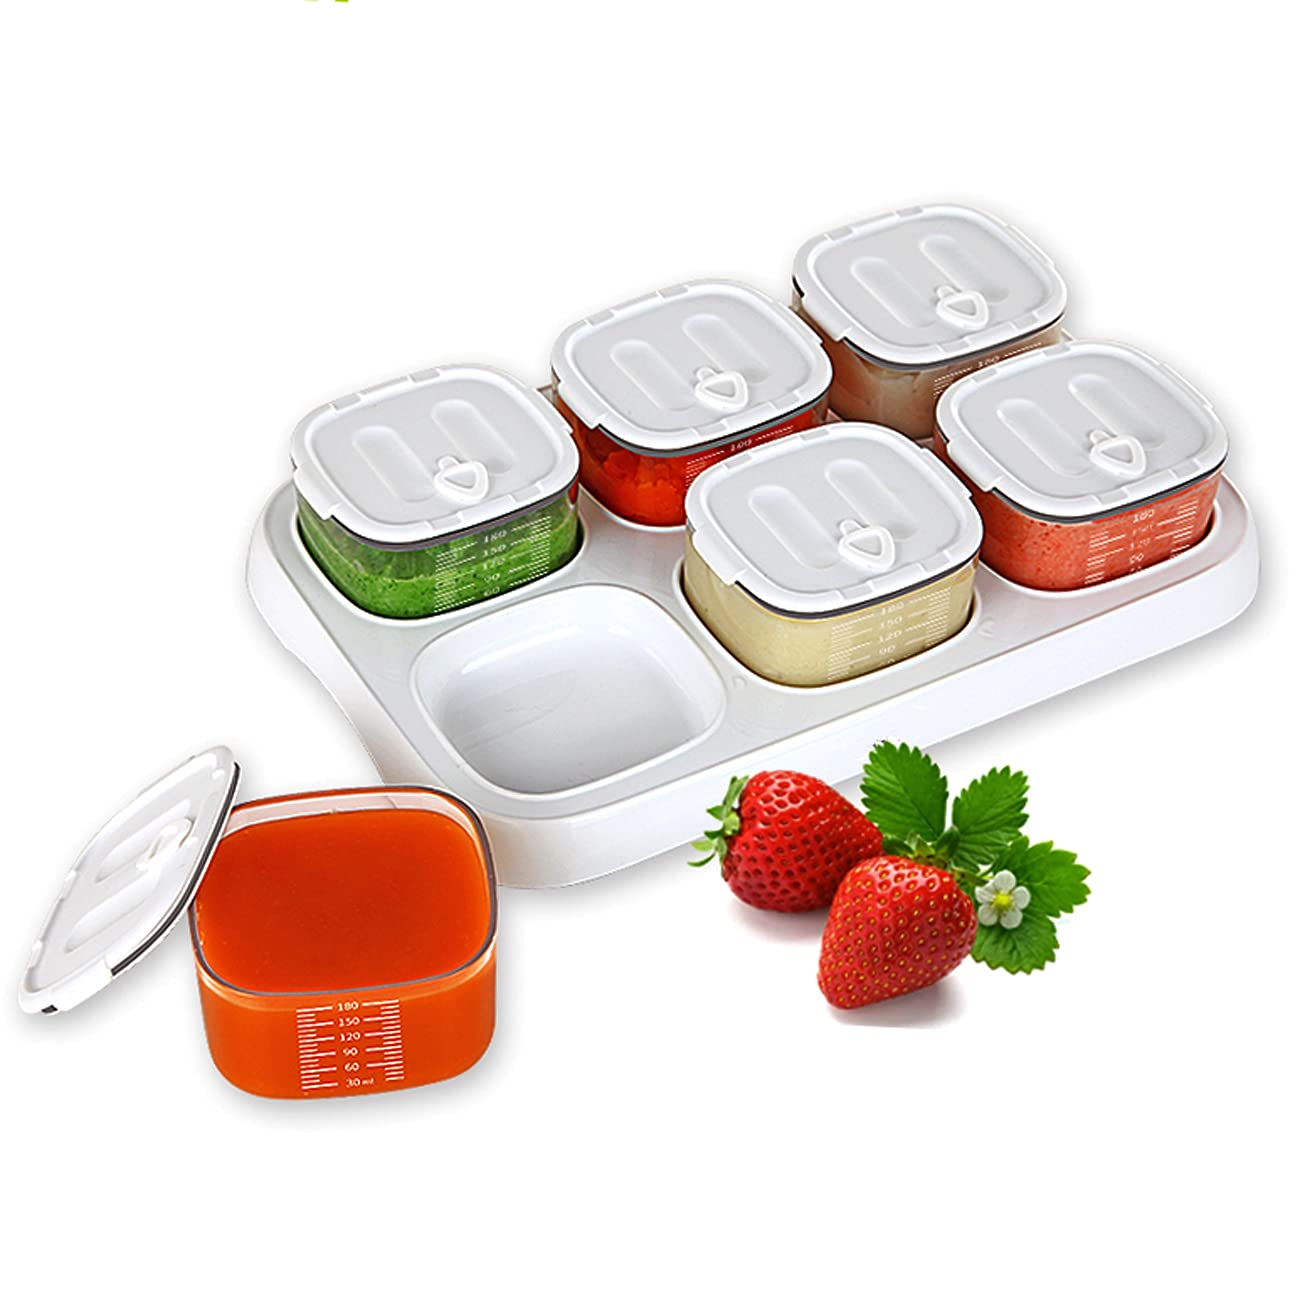 ANLEMIN Leakproof Baby Food Storage Jars - Set of 6-6 oz Baby Food Storage Containers with Lids, Tritan Grade Freezer Storage, BPA Free Reusable Small Containers